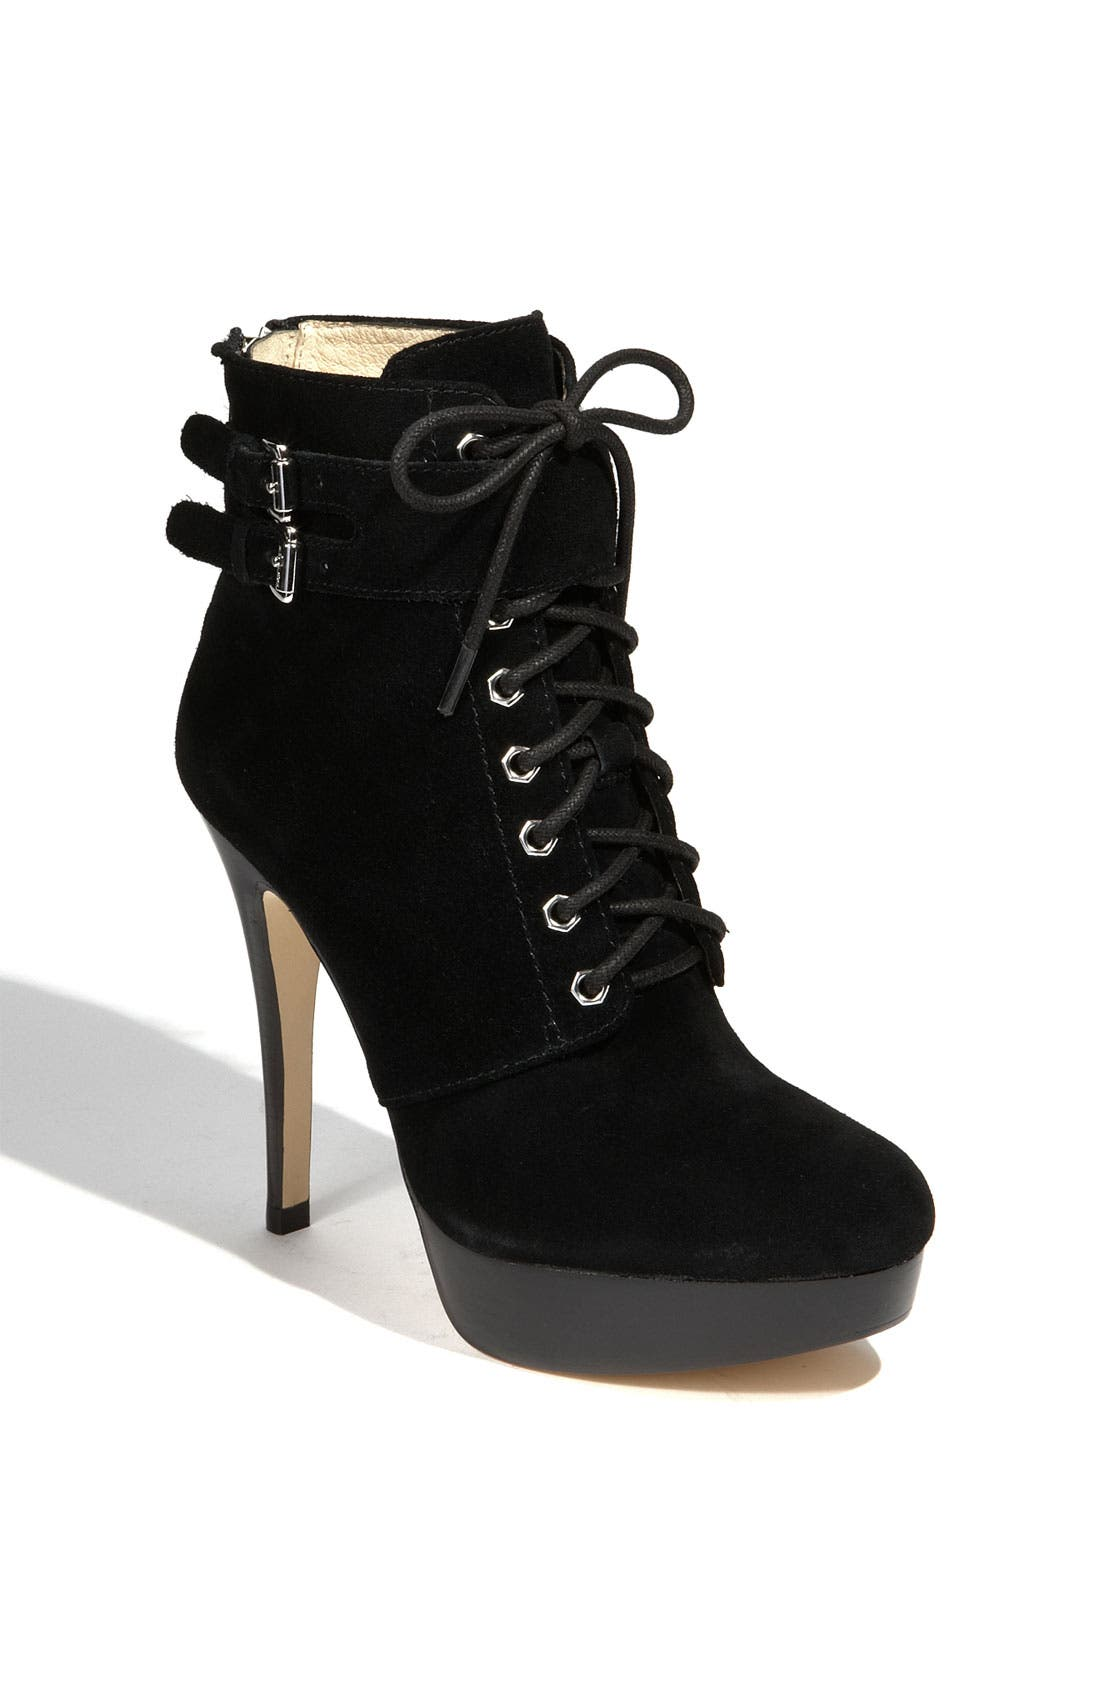 Alternate Image 1 Selected - MICHAEL Michael Kors 'Vanessa' Boot